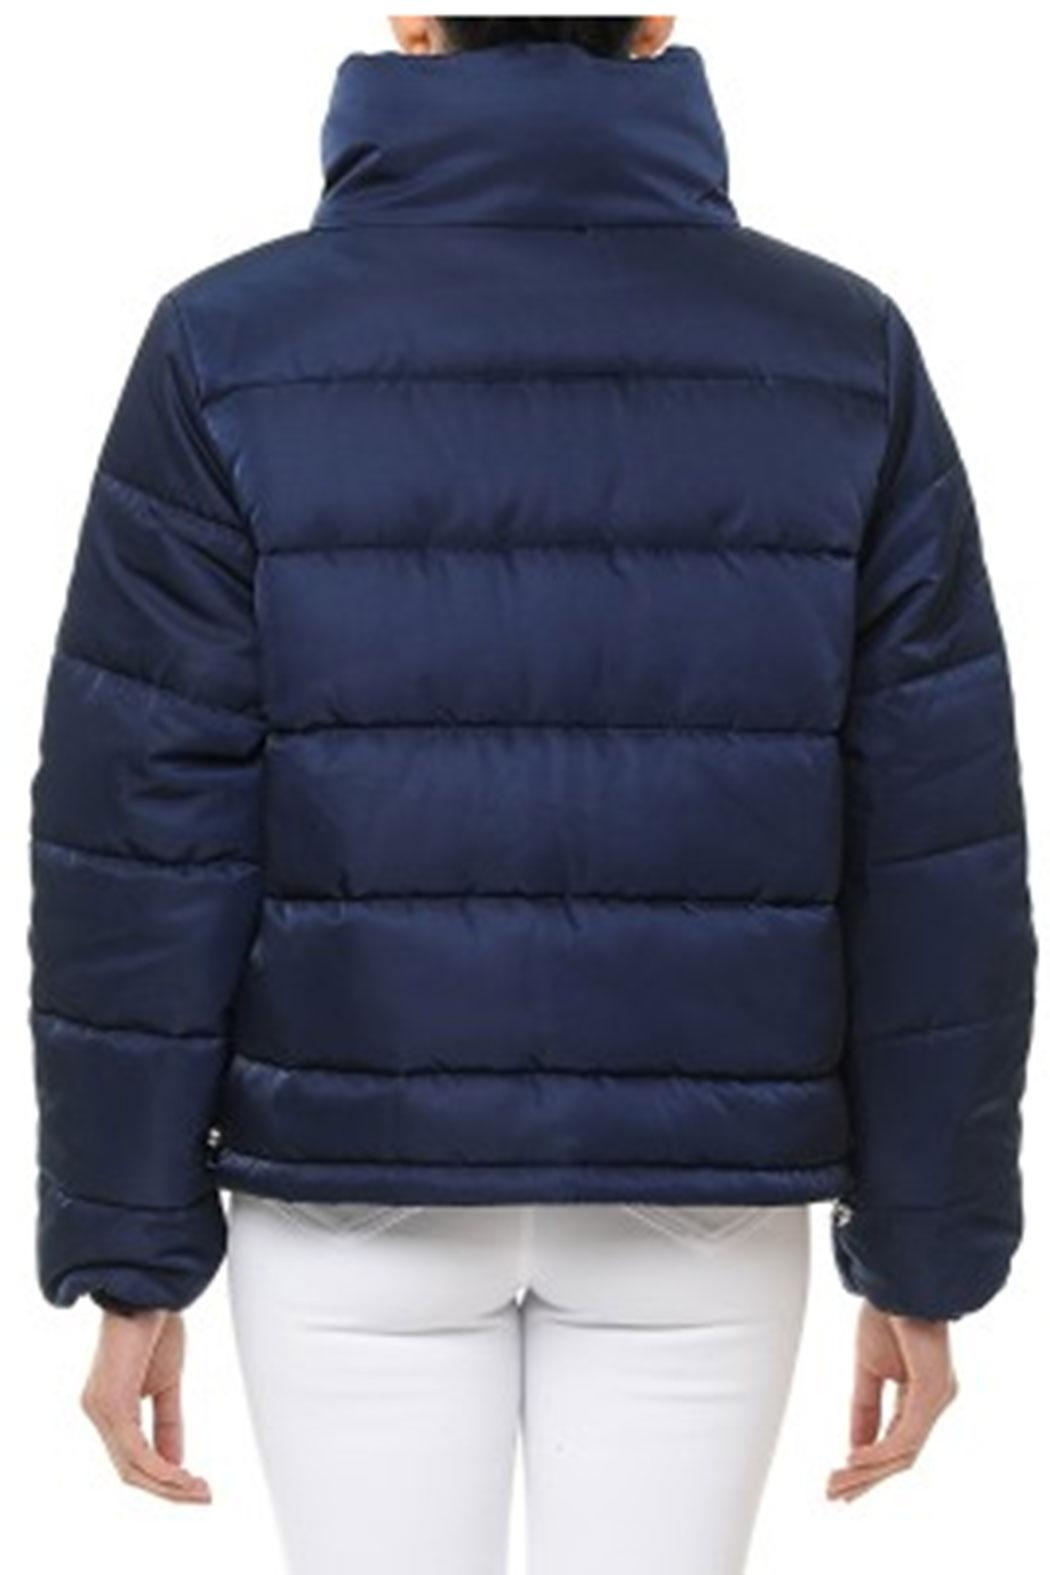 ambiance apparel Quilted Puffer Jacket - Side Cropped Image